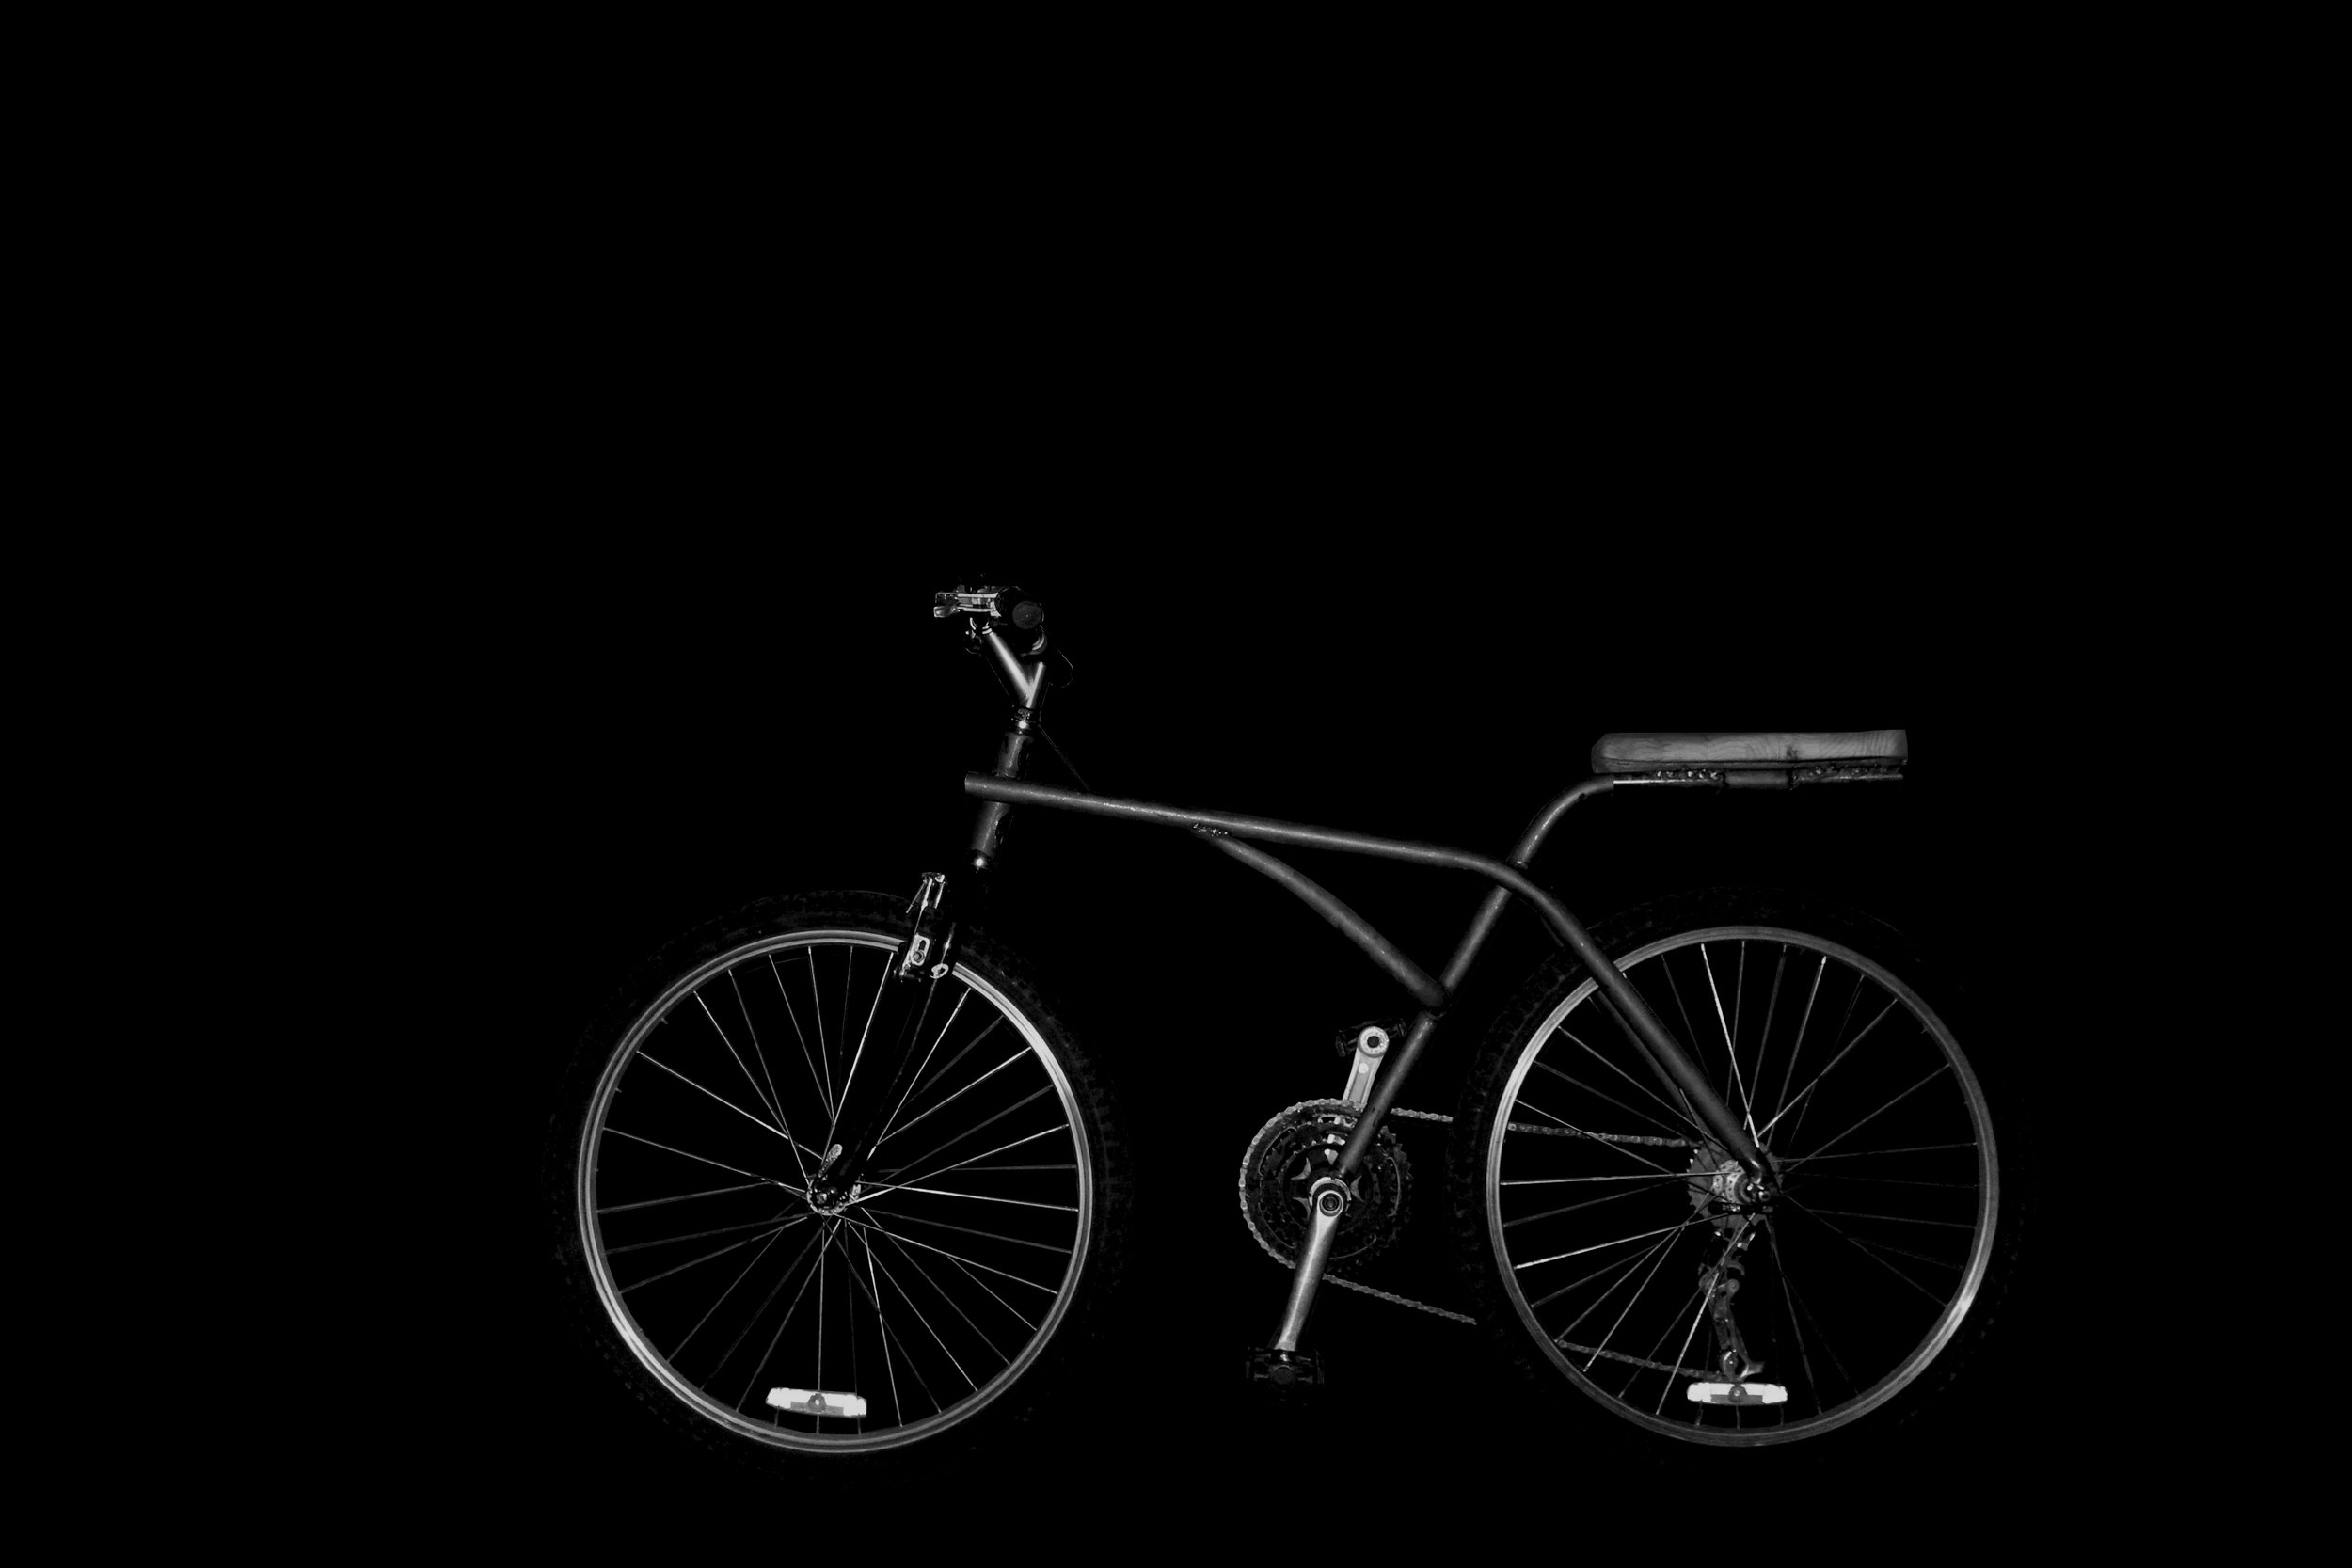 bike black portrait.jpg